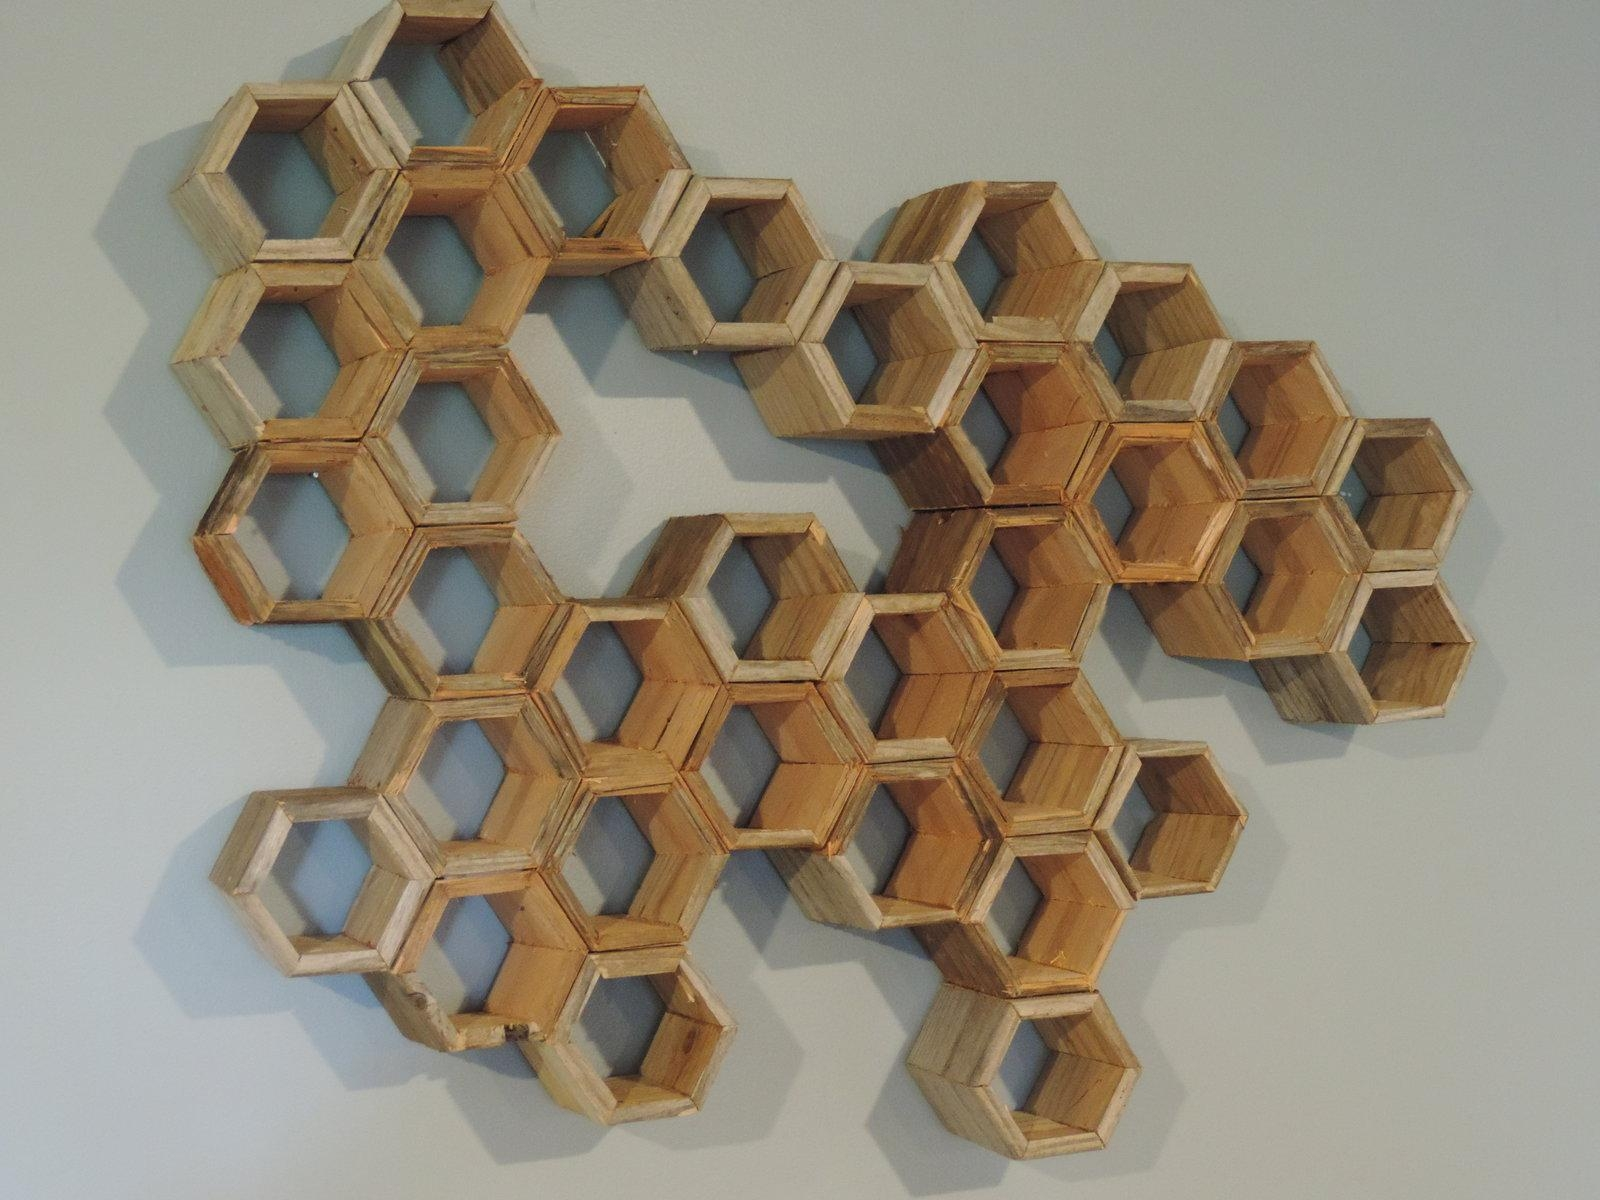 Driftwood Honeycomb Wall Artphilryanwoodworking On Deviantart Intended For Driftwood Wall Art (View 20 of 20)